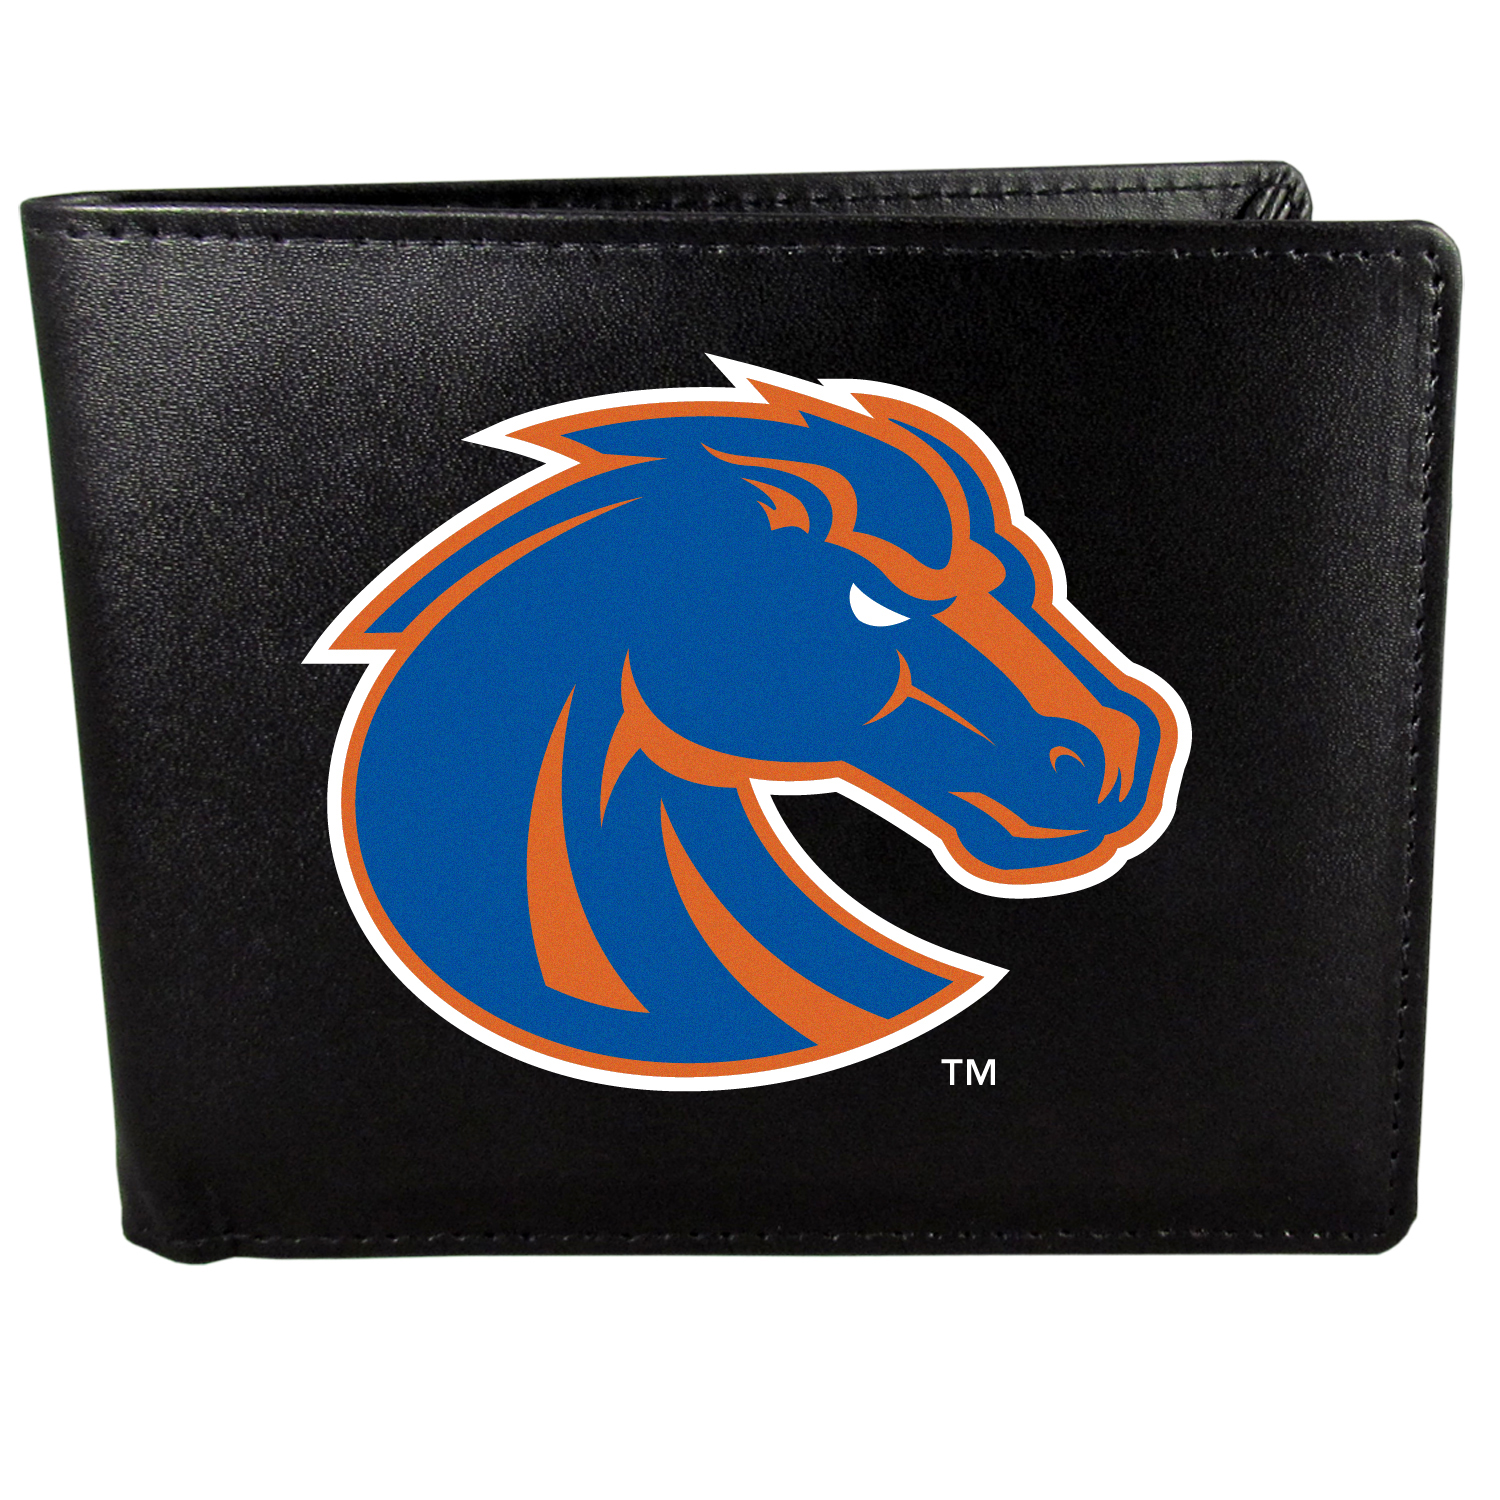 Boise St. Broncos Bi-fold Wallet Large Logo - Sports fans do not have to sacrifice style with this classic bi-fold wallet that sports the Boise St. Broncos?extra large logo. This men's fashion accessory has a leather grain look and expert craftmanship for a quality wallet at a great price. The wallet features inner credit card slots, windowed ID slot and a large billfold pocket. The front of the wallet features a printed team logo.